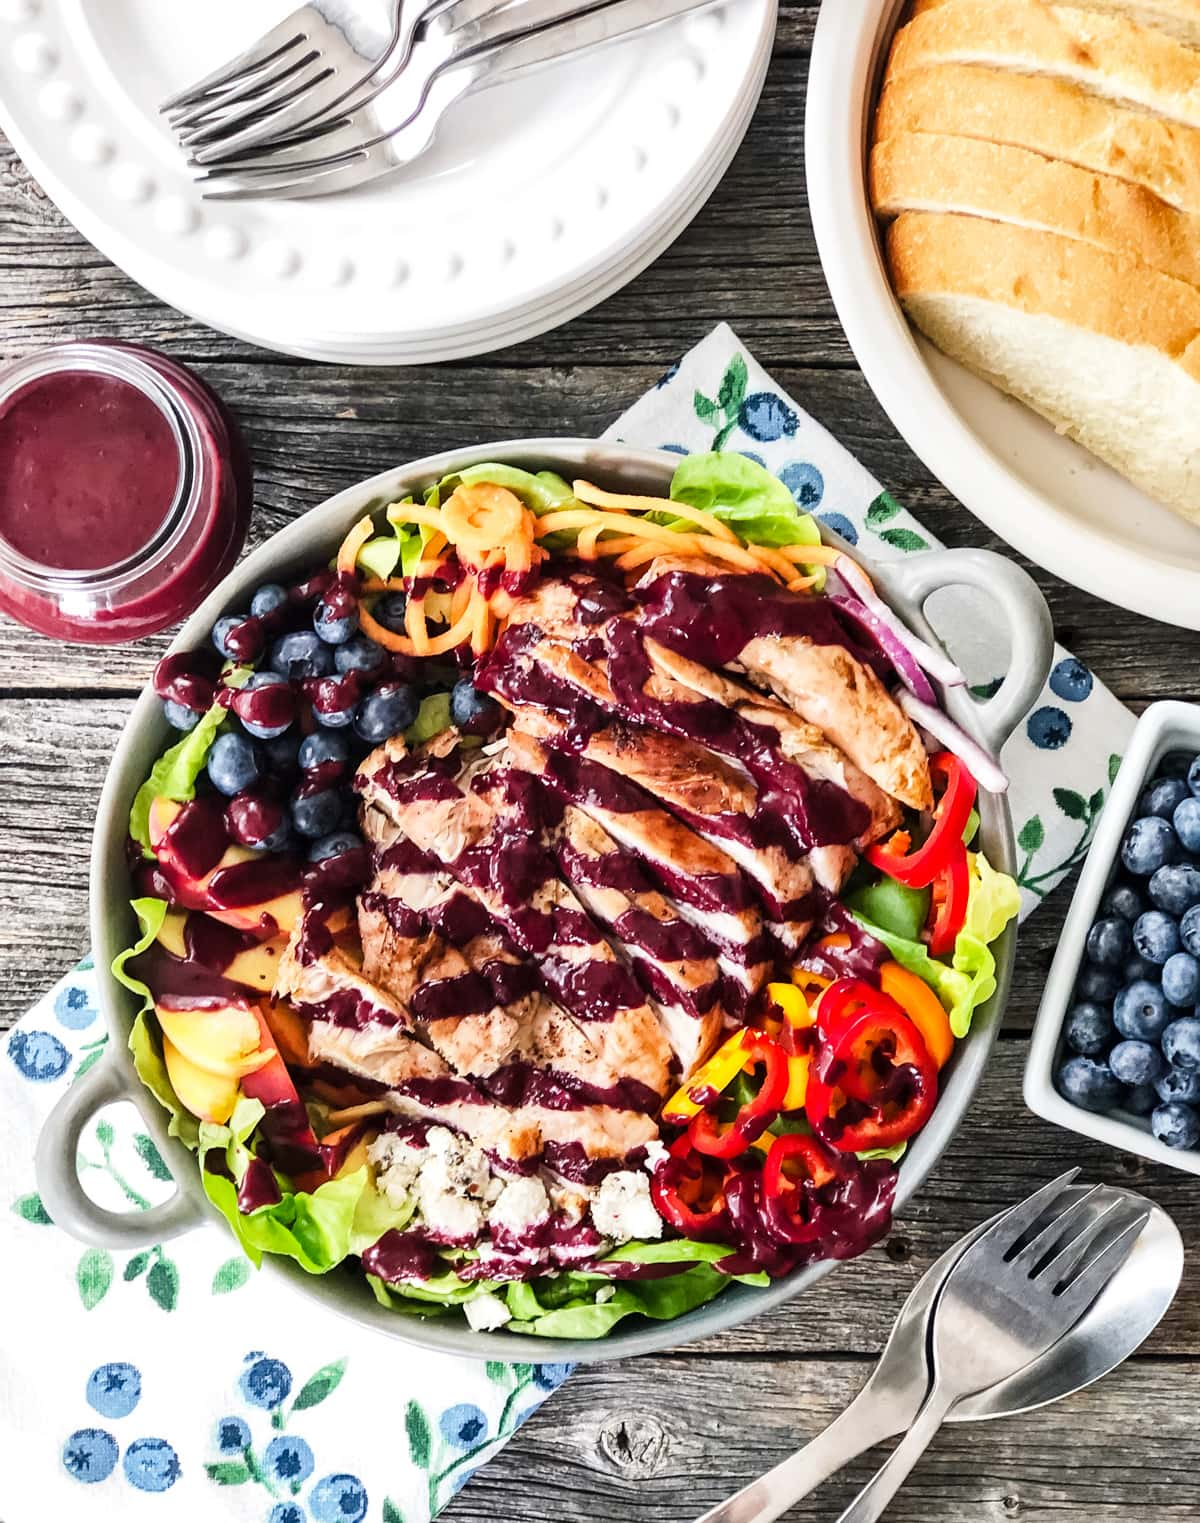 Blueberry Balsamic Grilled Turkey Salad